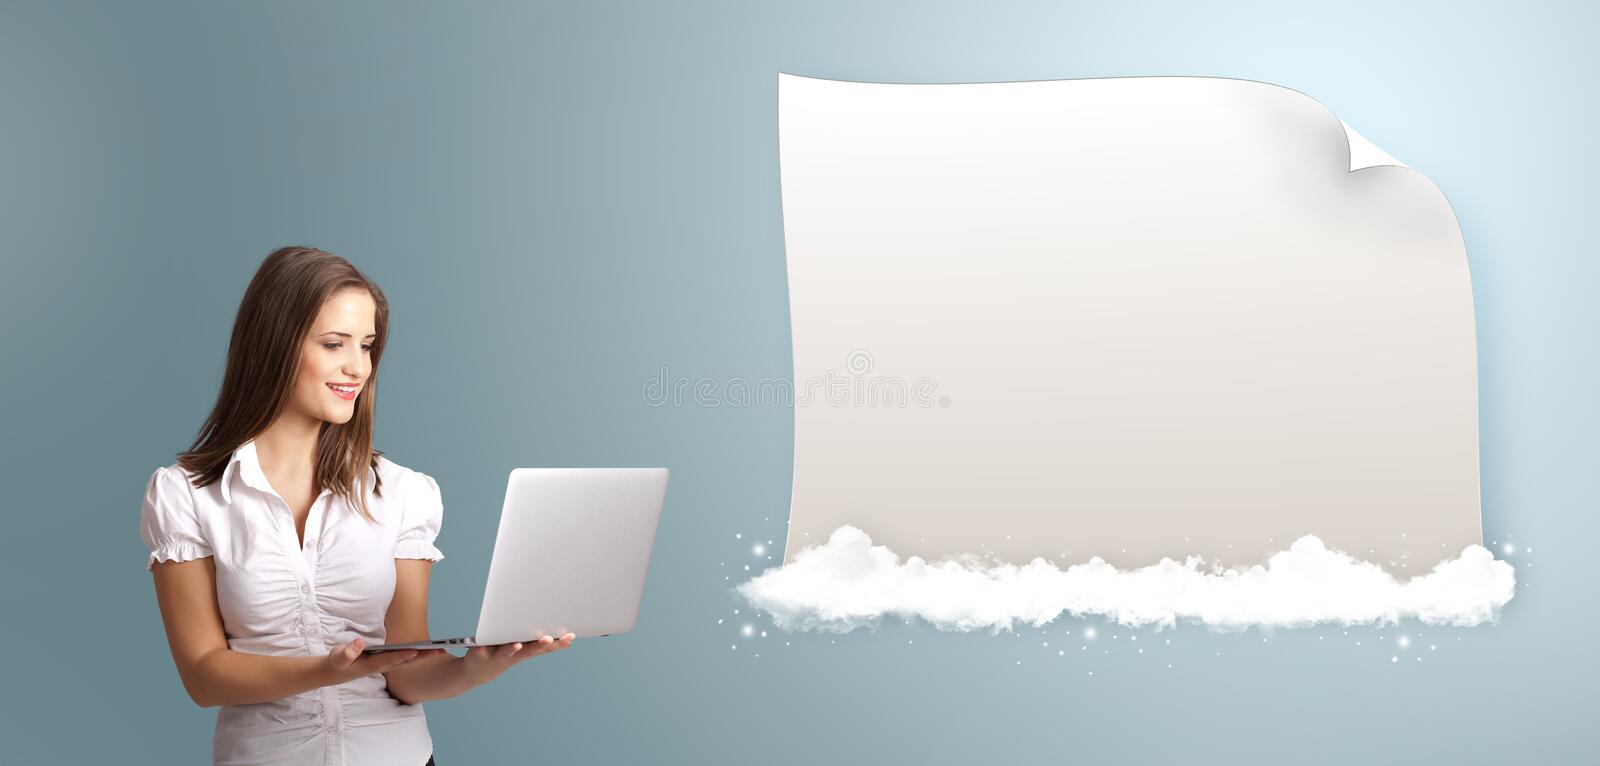 Attractive woman holding a laptop and presenting modern copy spa royalty free stock photo